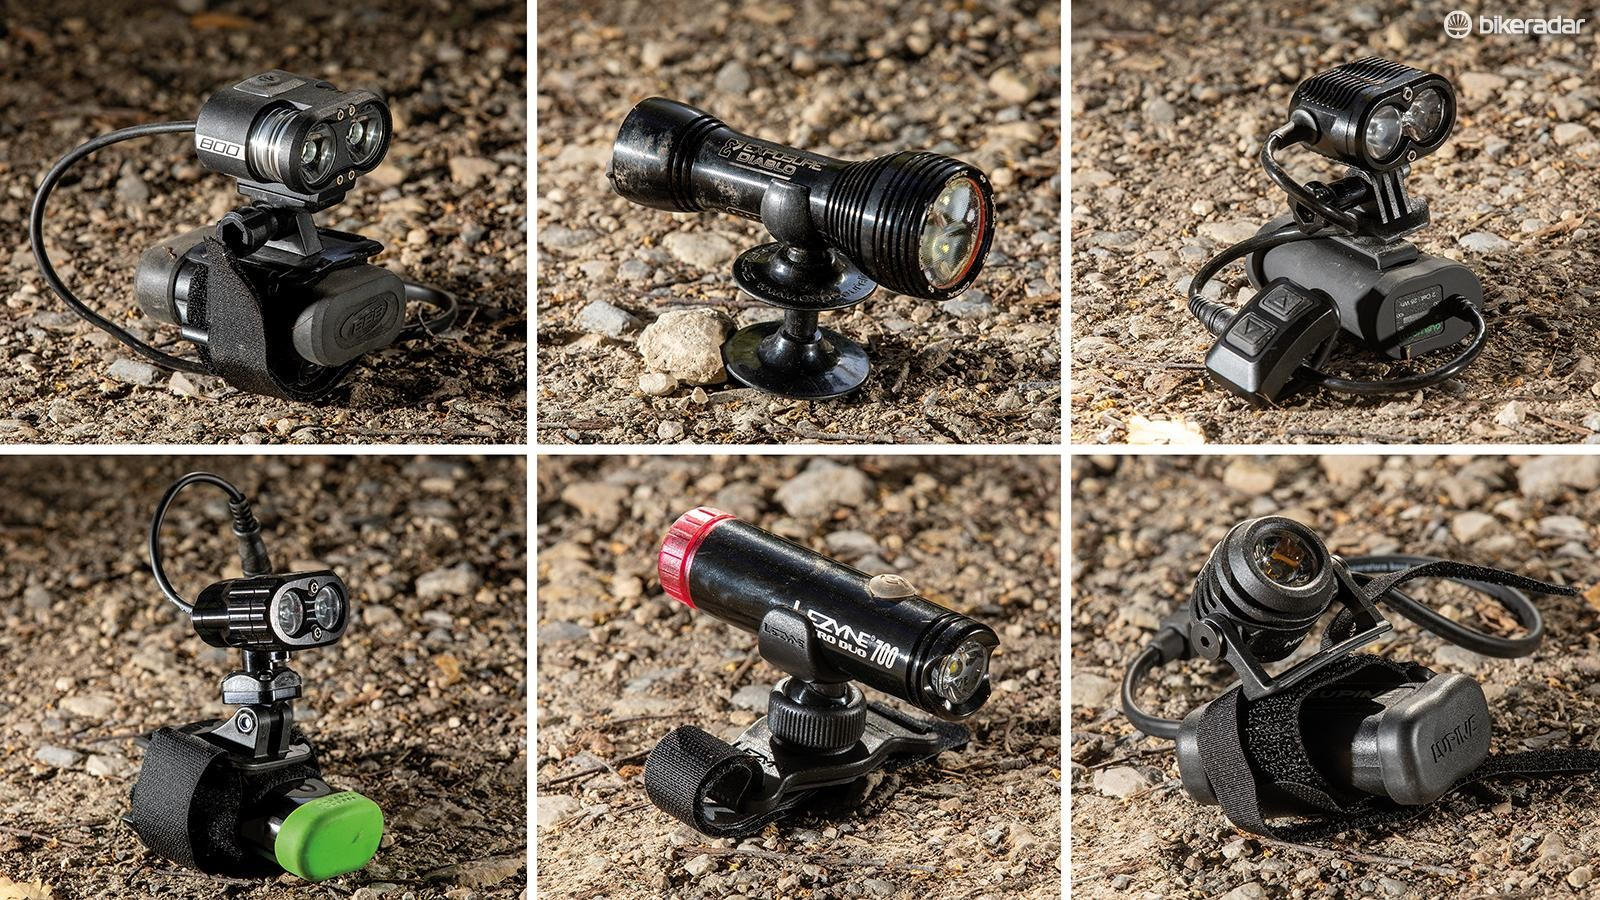 Light up where you're looking, to ride faster on technical trails